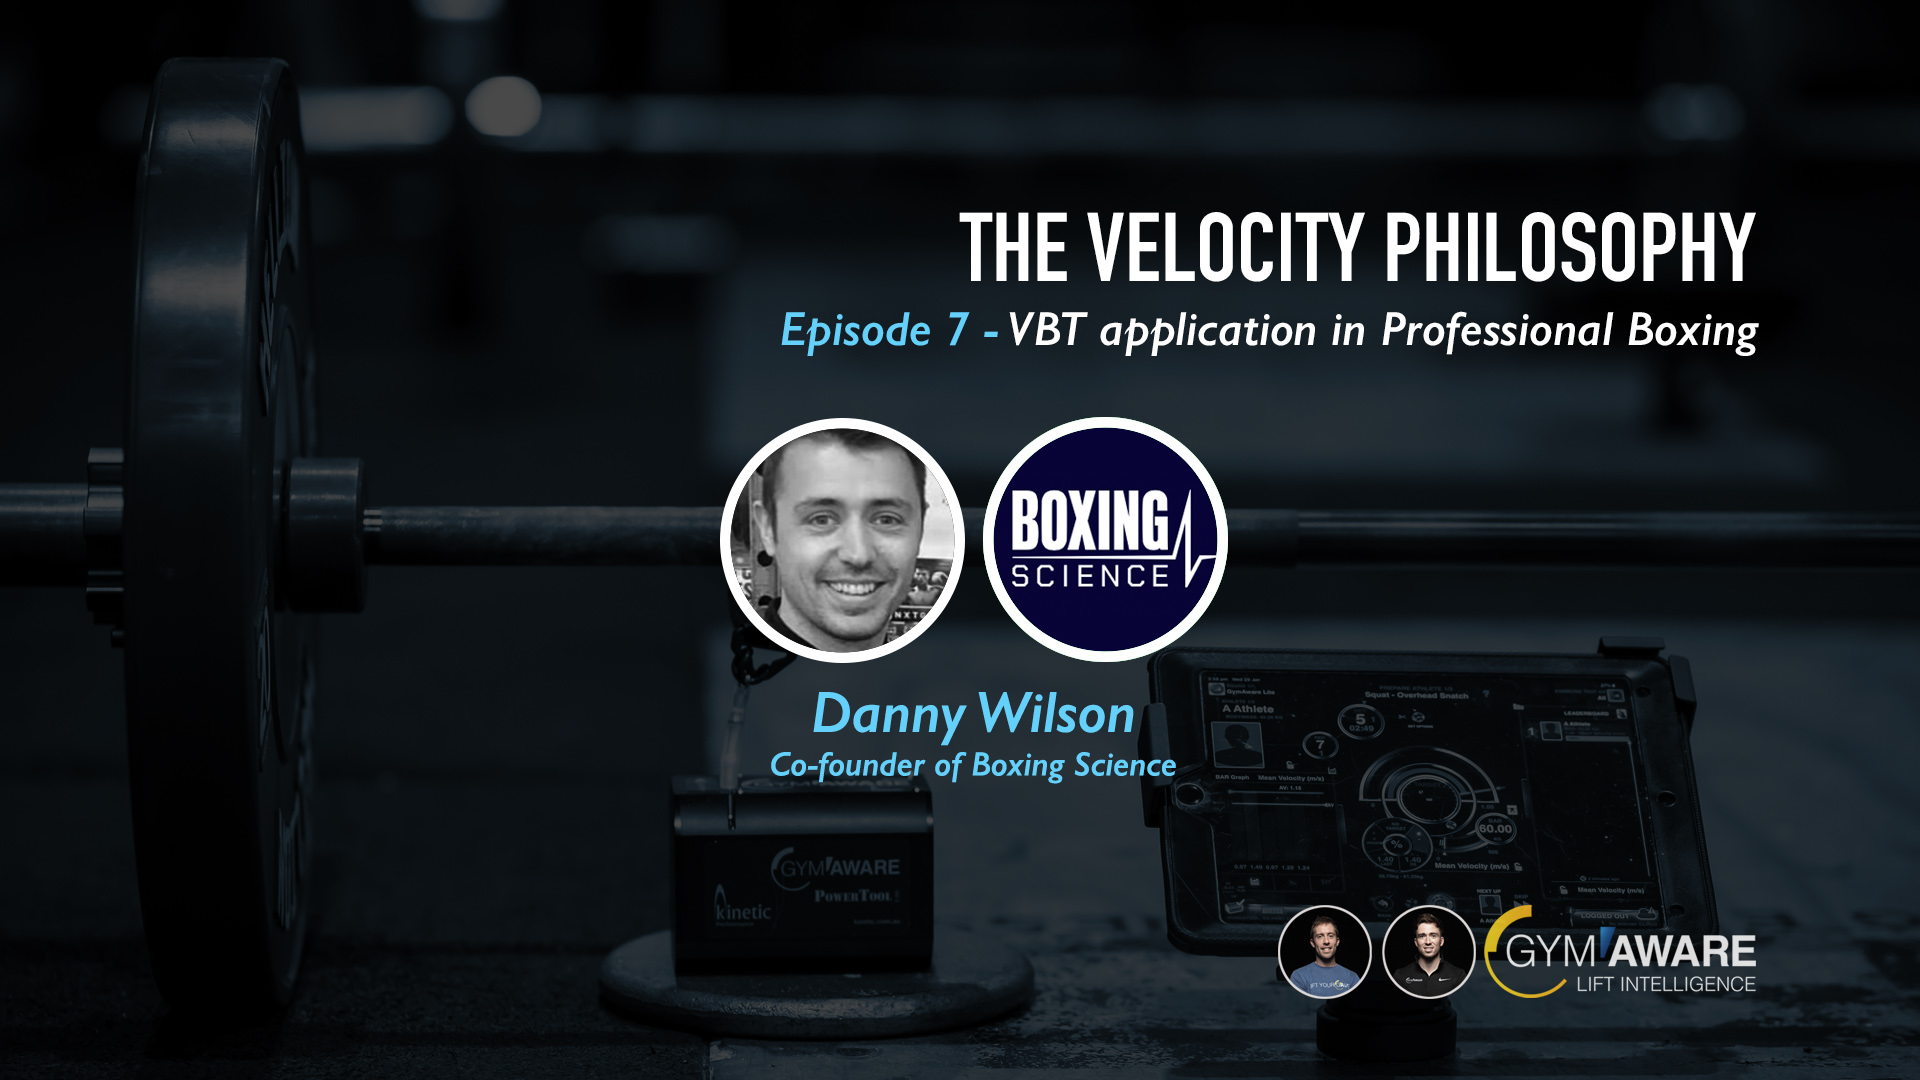 danny wilson boxing science